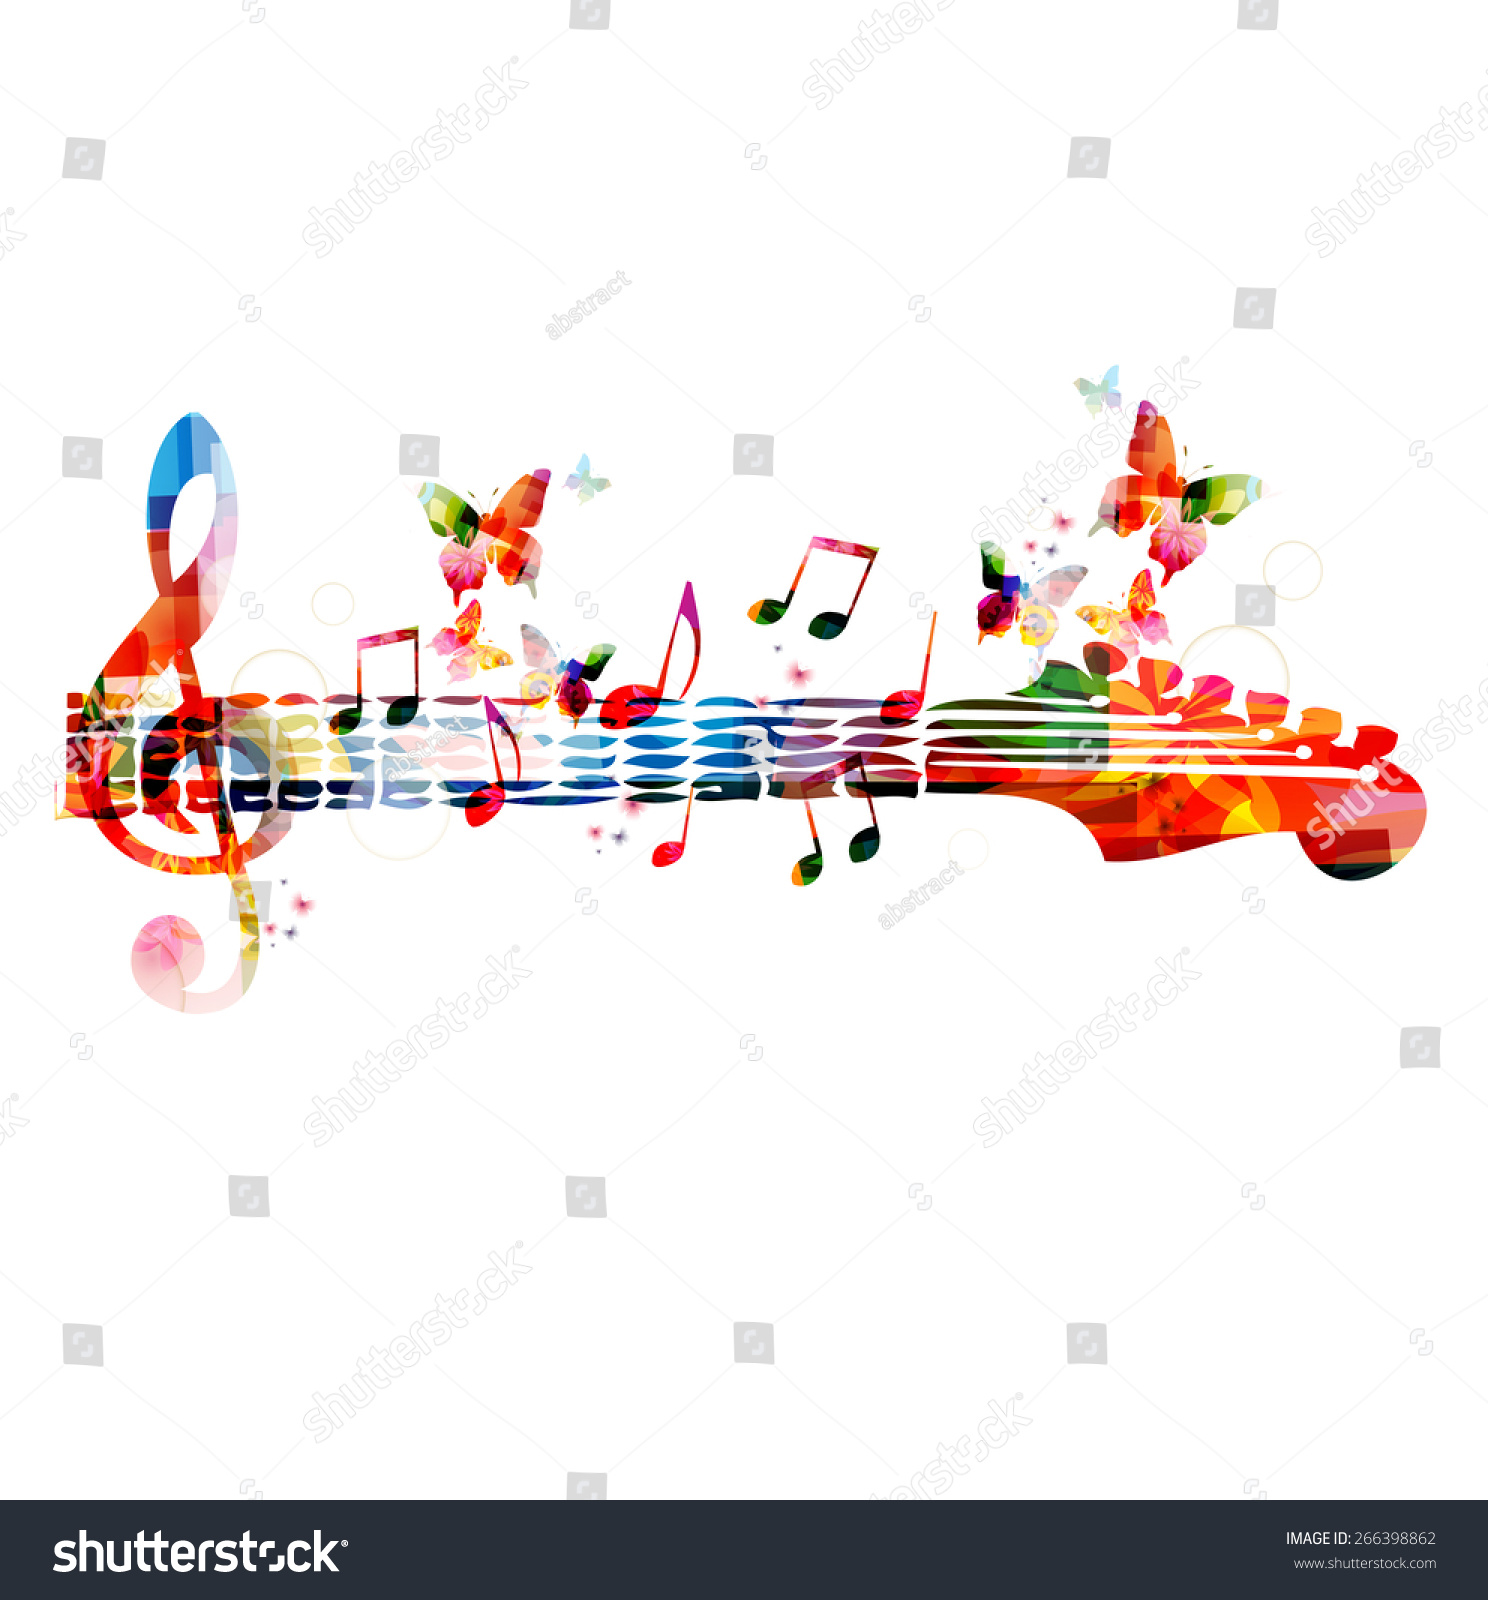 Colorful Music Design With Butterflies Stock Vector ...